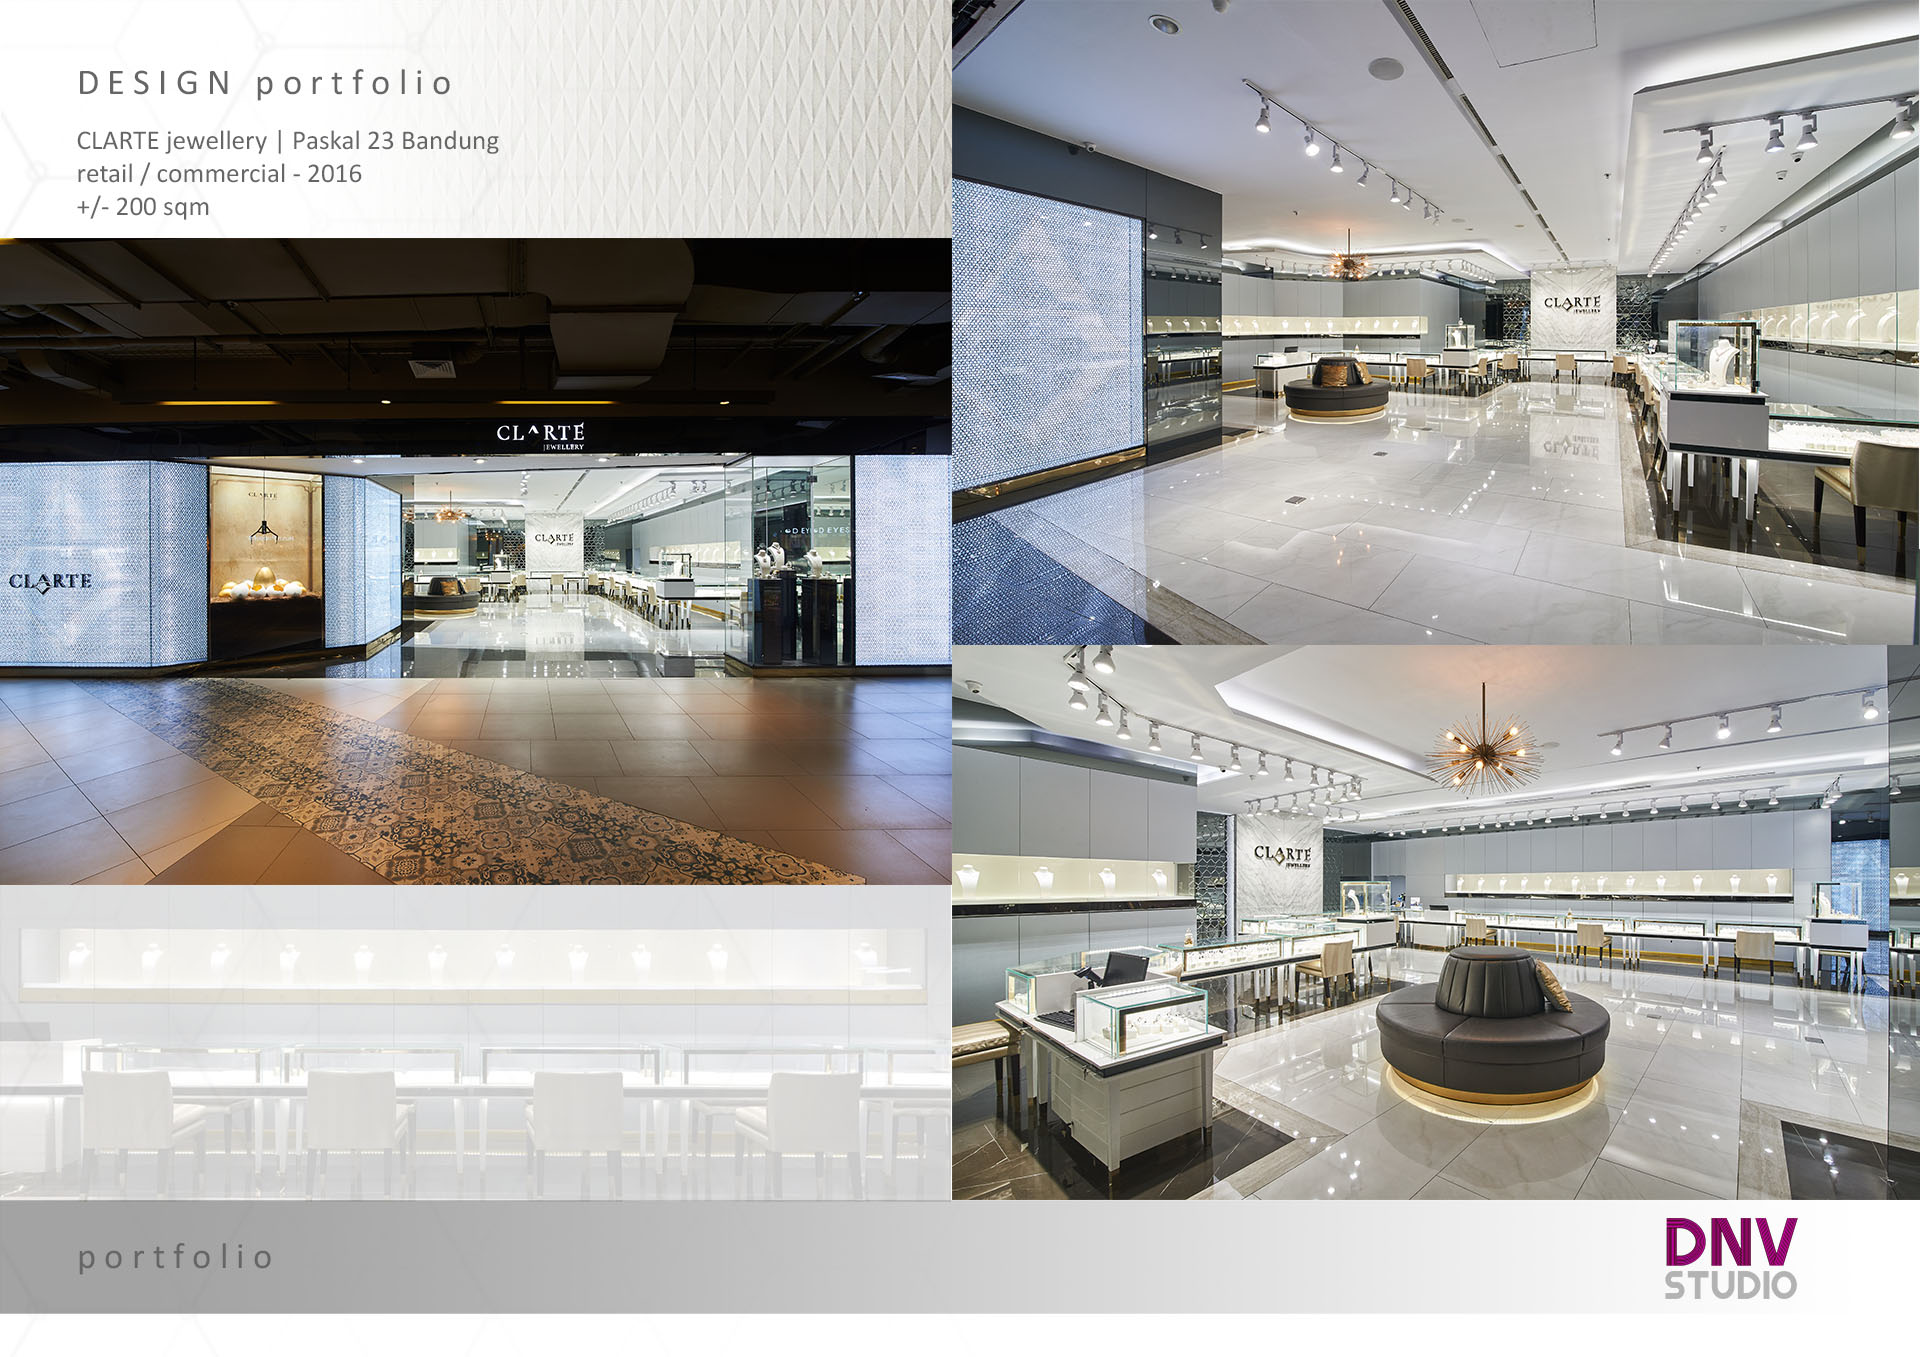 Interior & Exterior Design - Press get quote button and contact us about the project detailWe're experienced on residential, retail commercial, F&B, and event booth design.Pricing based on project size [ sqm ]Final format on PDF and CAD